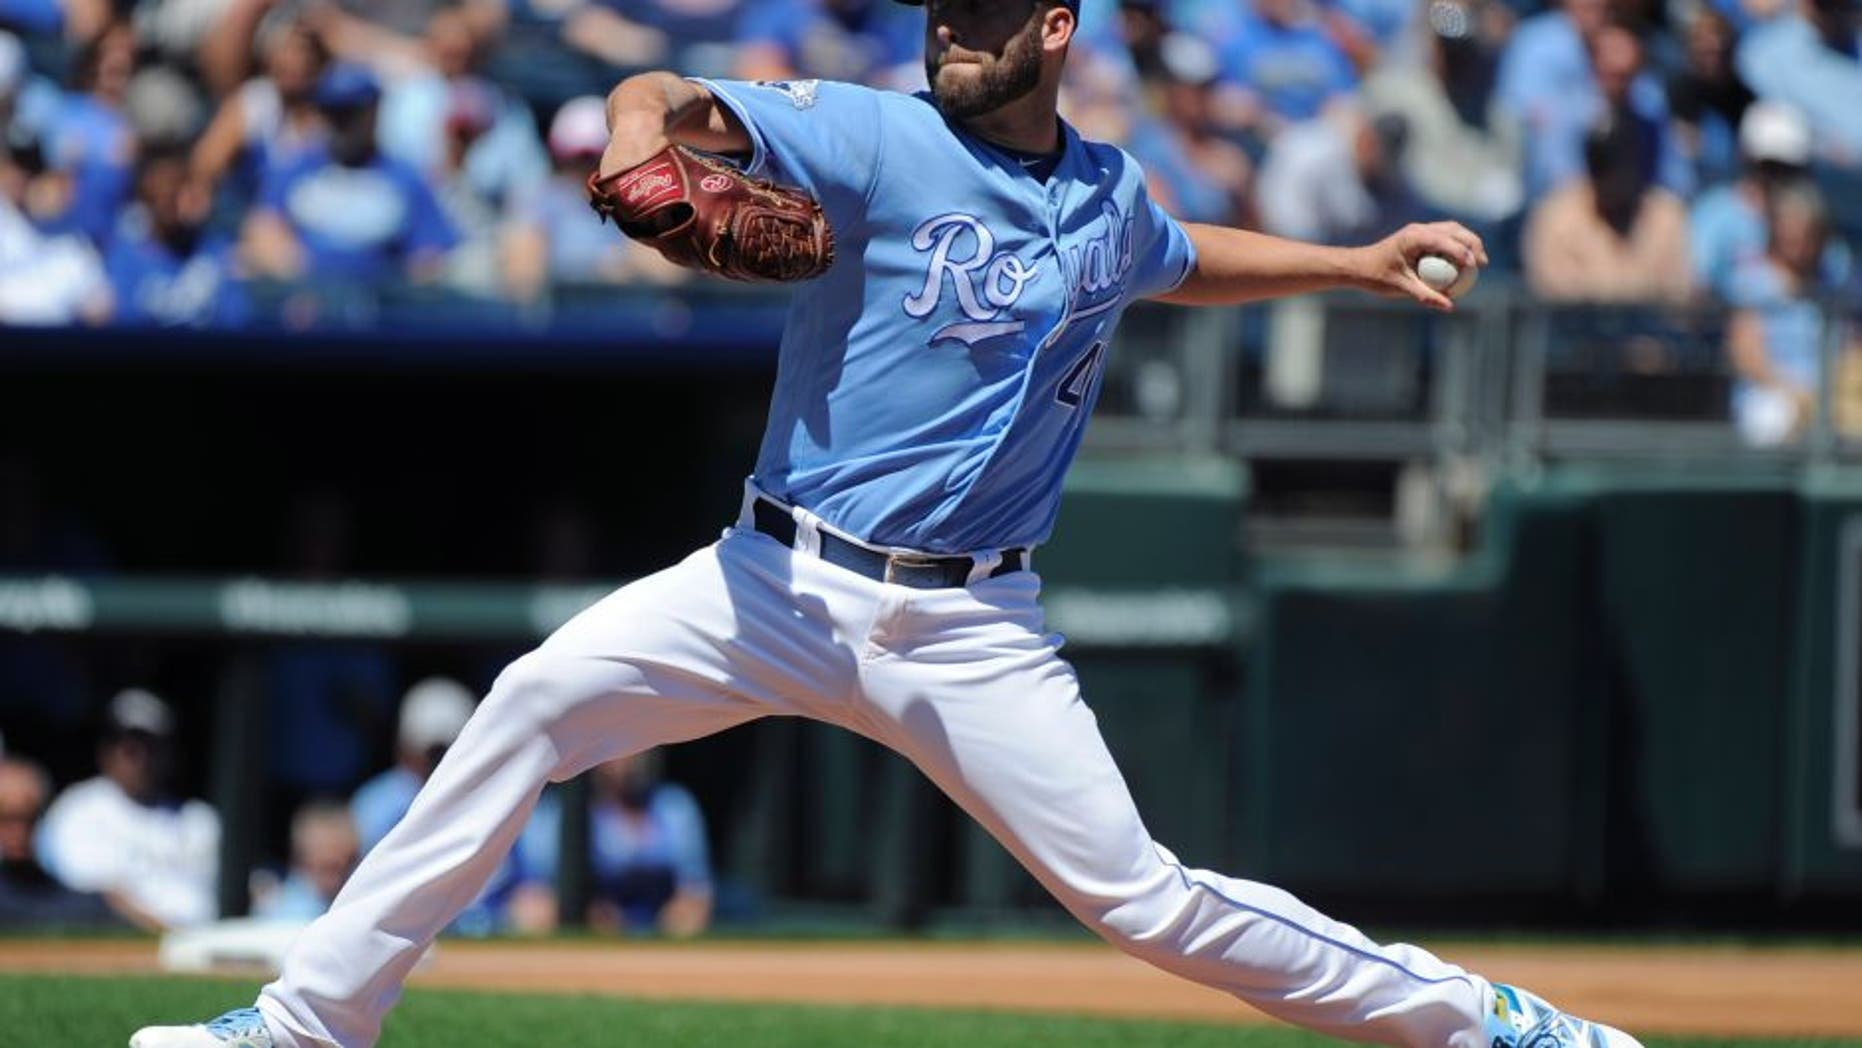 KANSAS CITY, MO - AUGUST 21: Danny Duffy #41 of the Kansas City Royals throws in the first inning against the Minnesota Twins at Kauffman Stadium on August 21, 2016 in Kansas City, Missouri. (Photo by Ed Zurga/Getty Images)